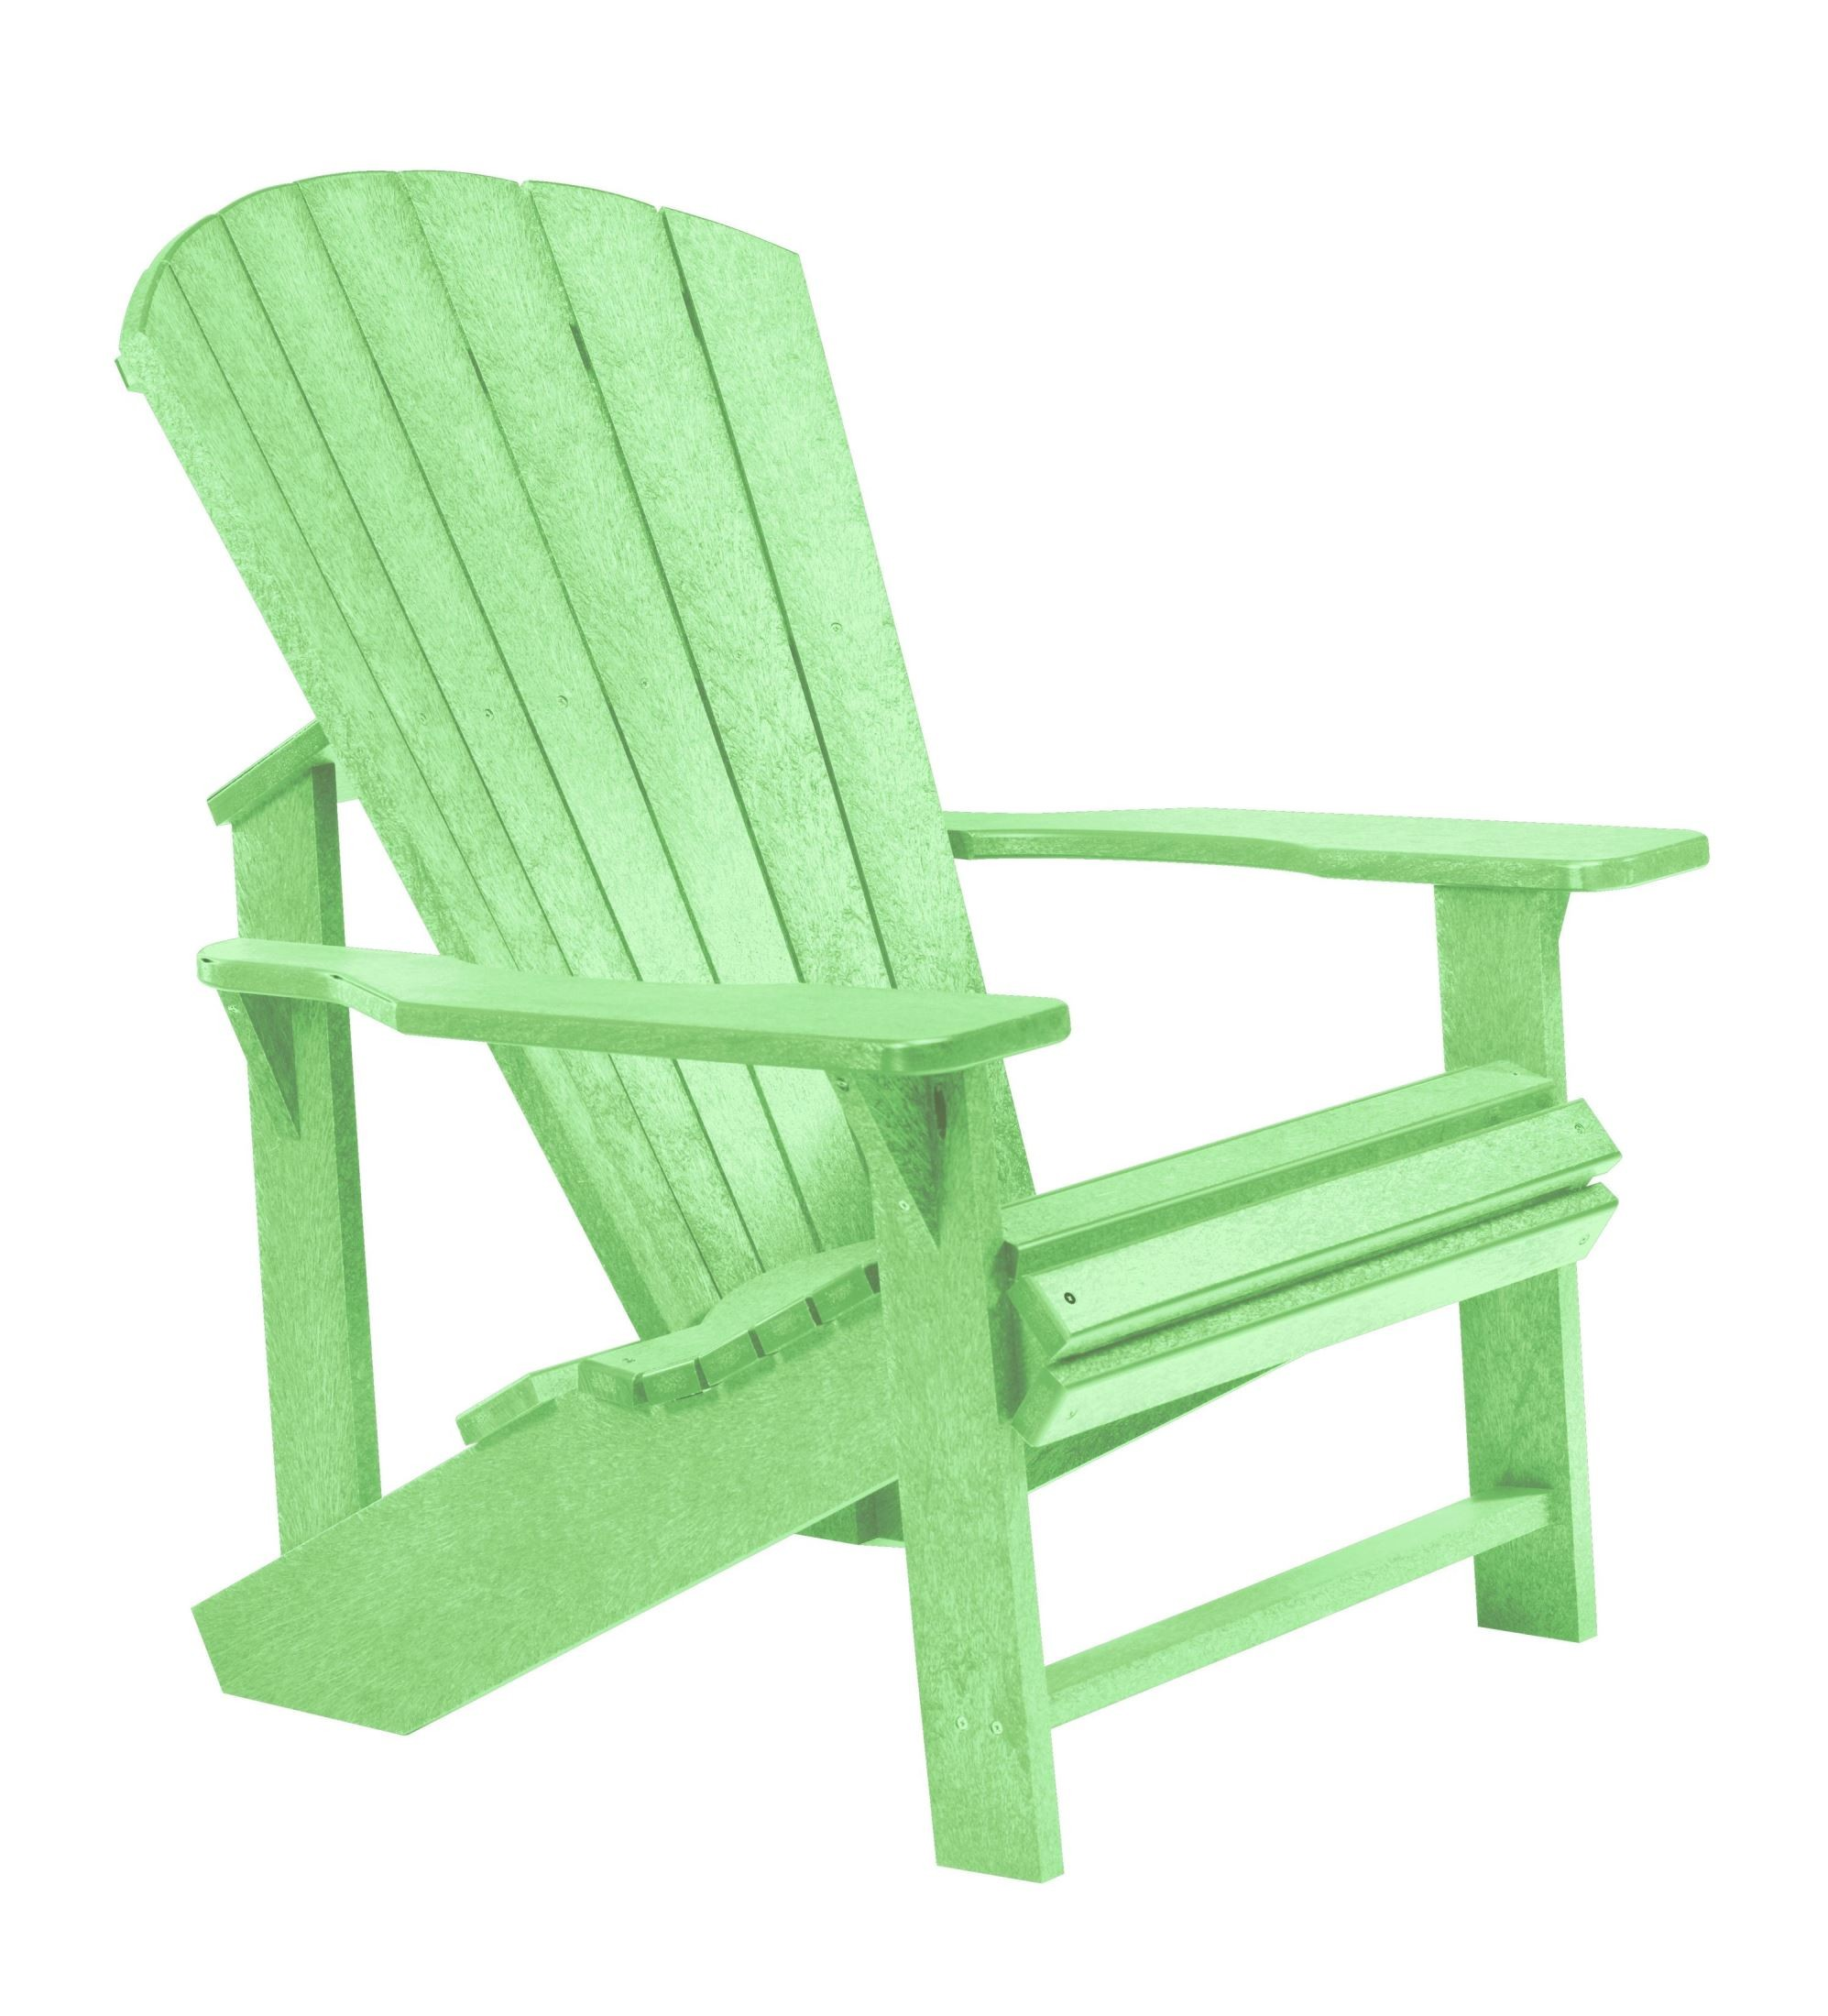 Generations lime green adirondack chair from cr plastic c01 15 coleman furniture - Green resin adirondack chairs ...